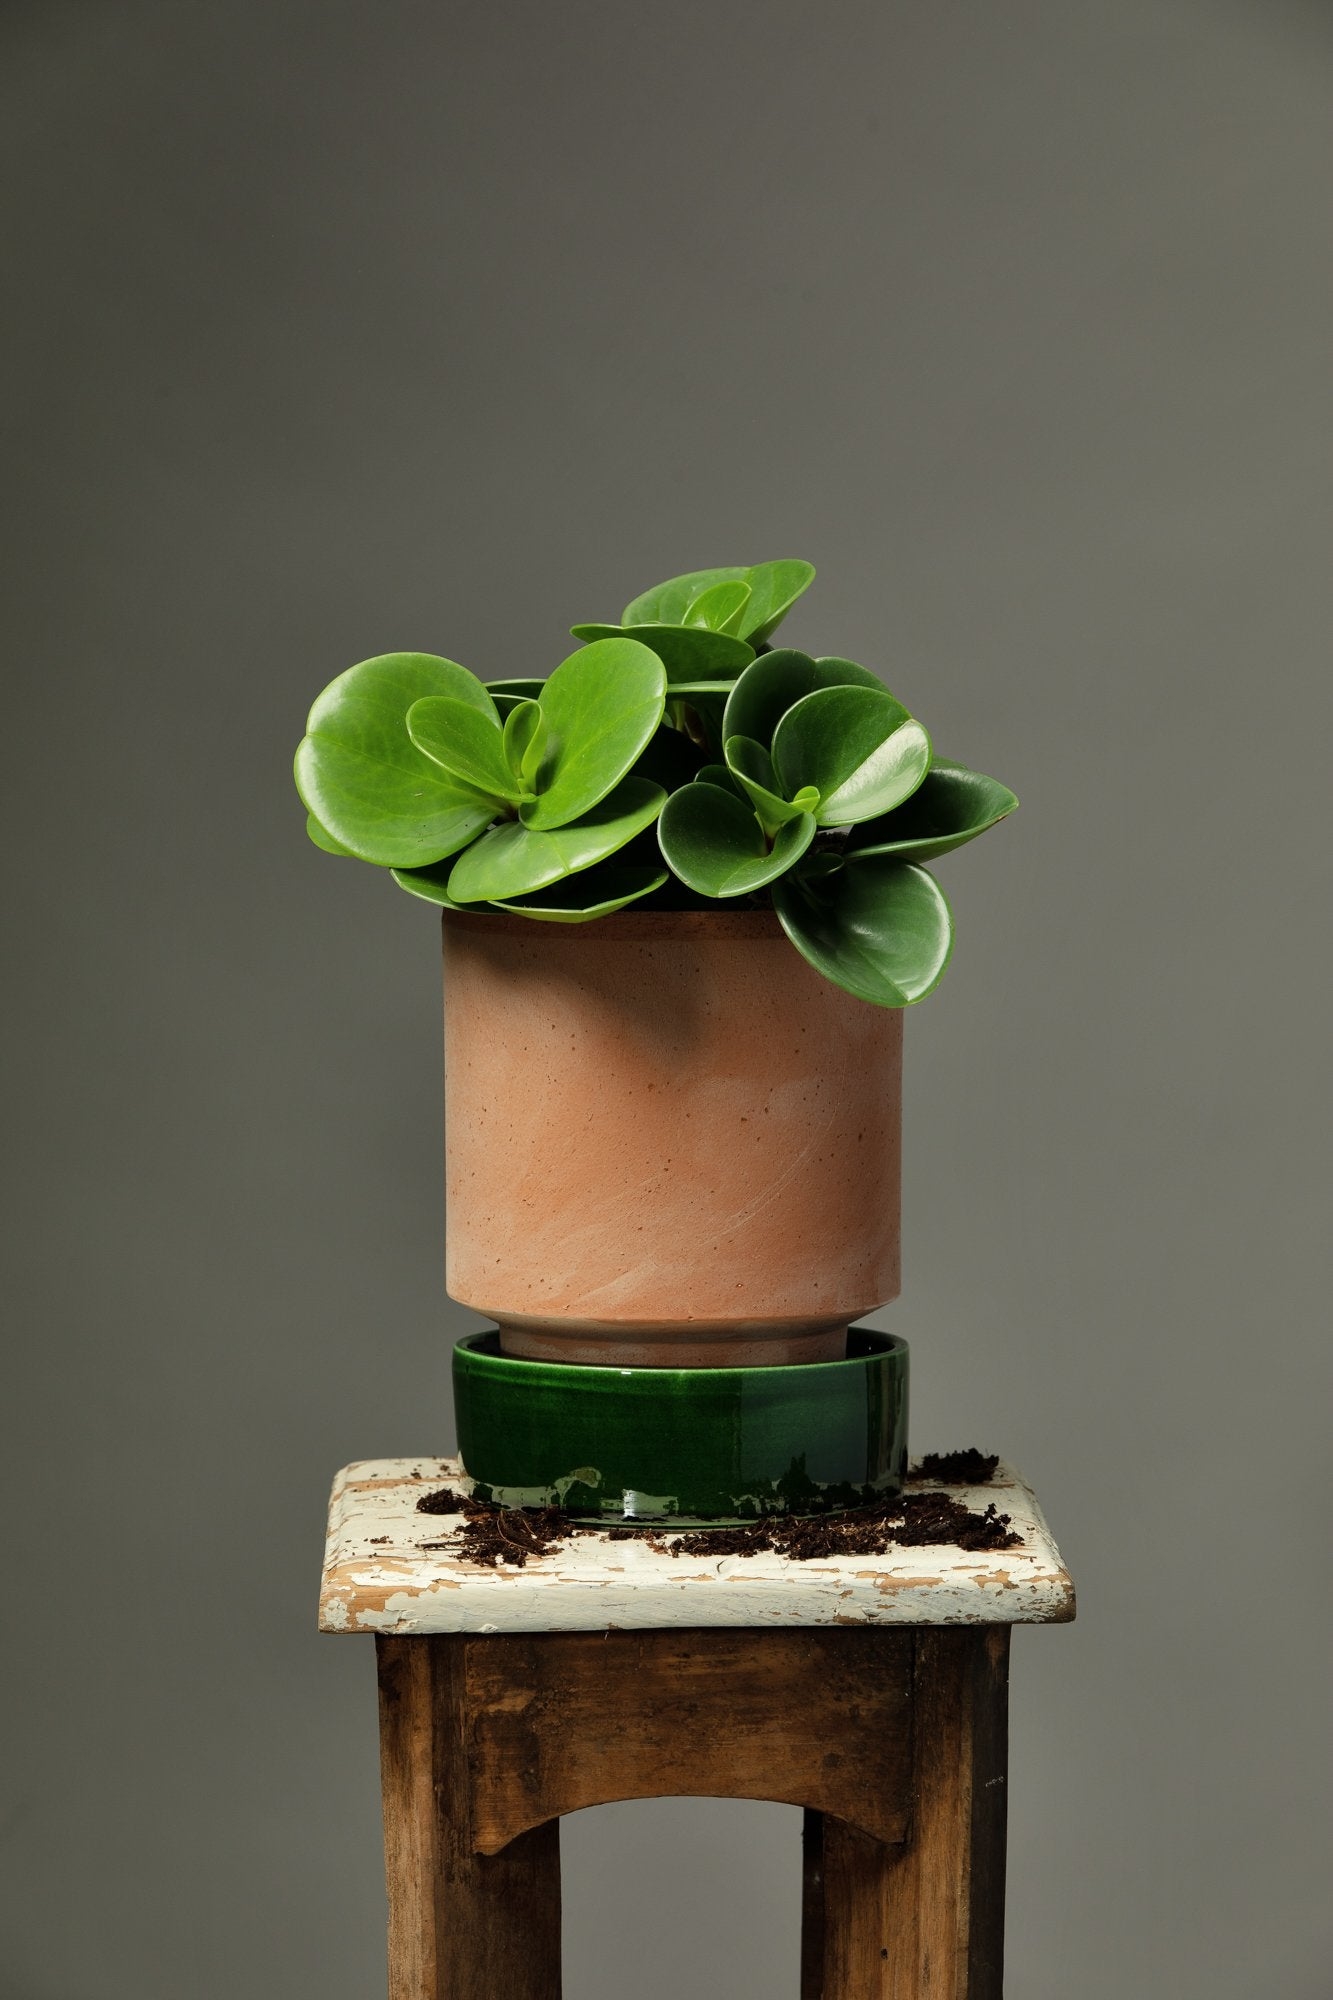 A Baby Rubber Plant house plant repotted in a Berg's Hoff terracotta houseplant pot, with a glazed emerald green pot dish.